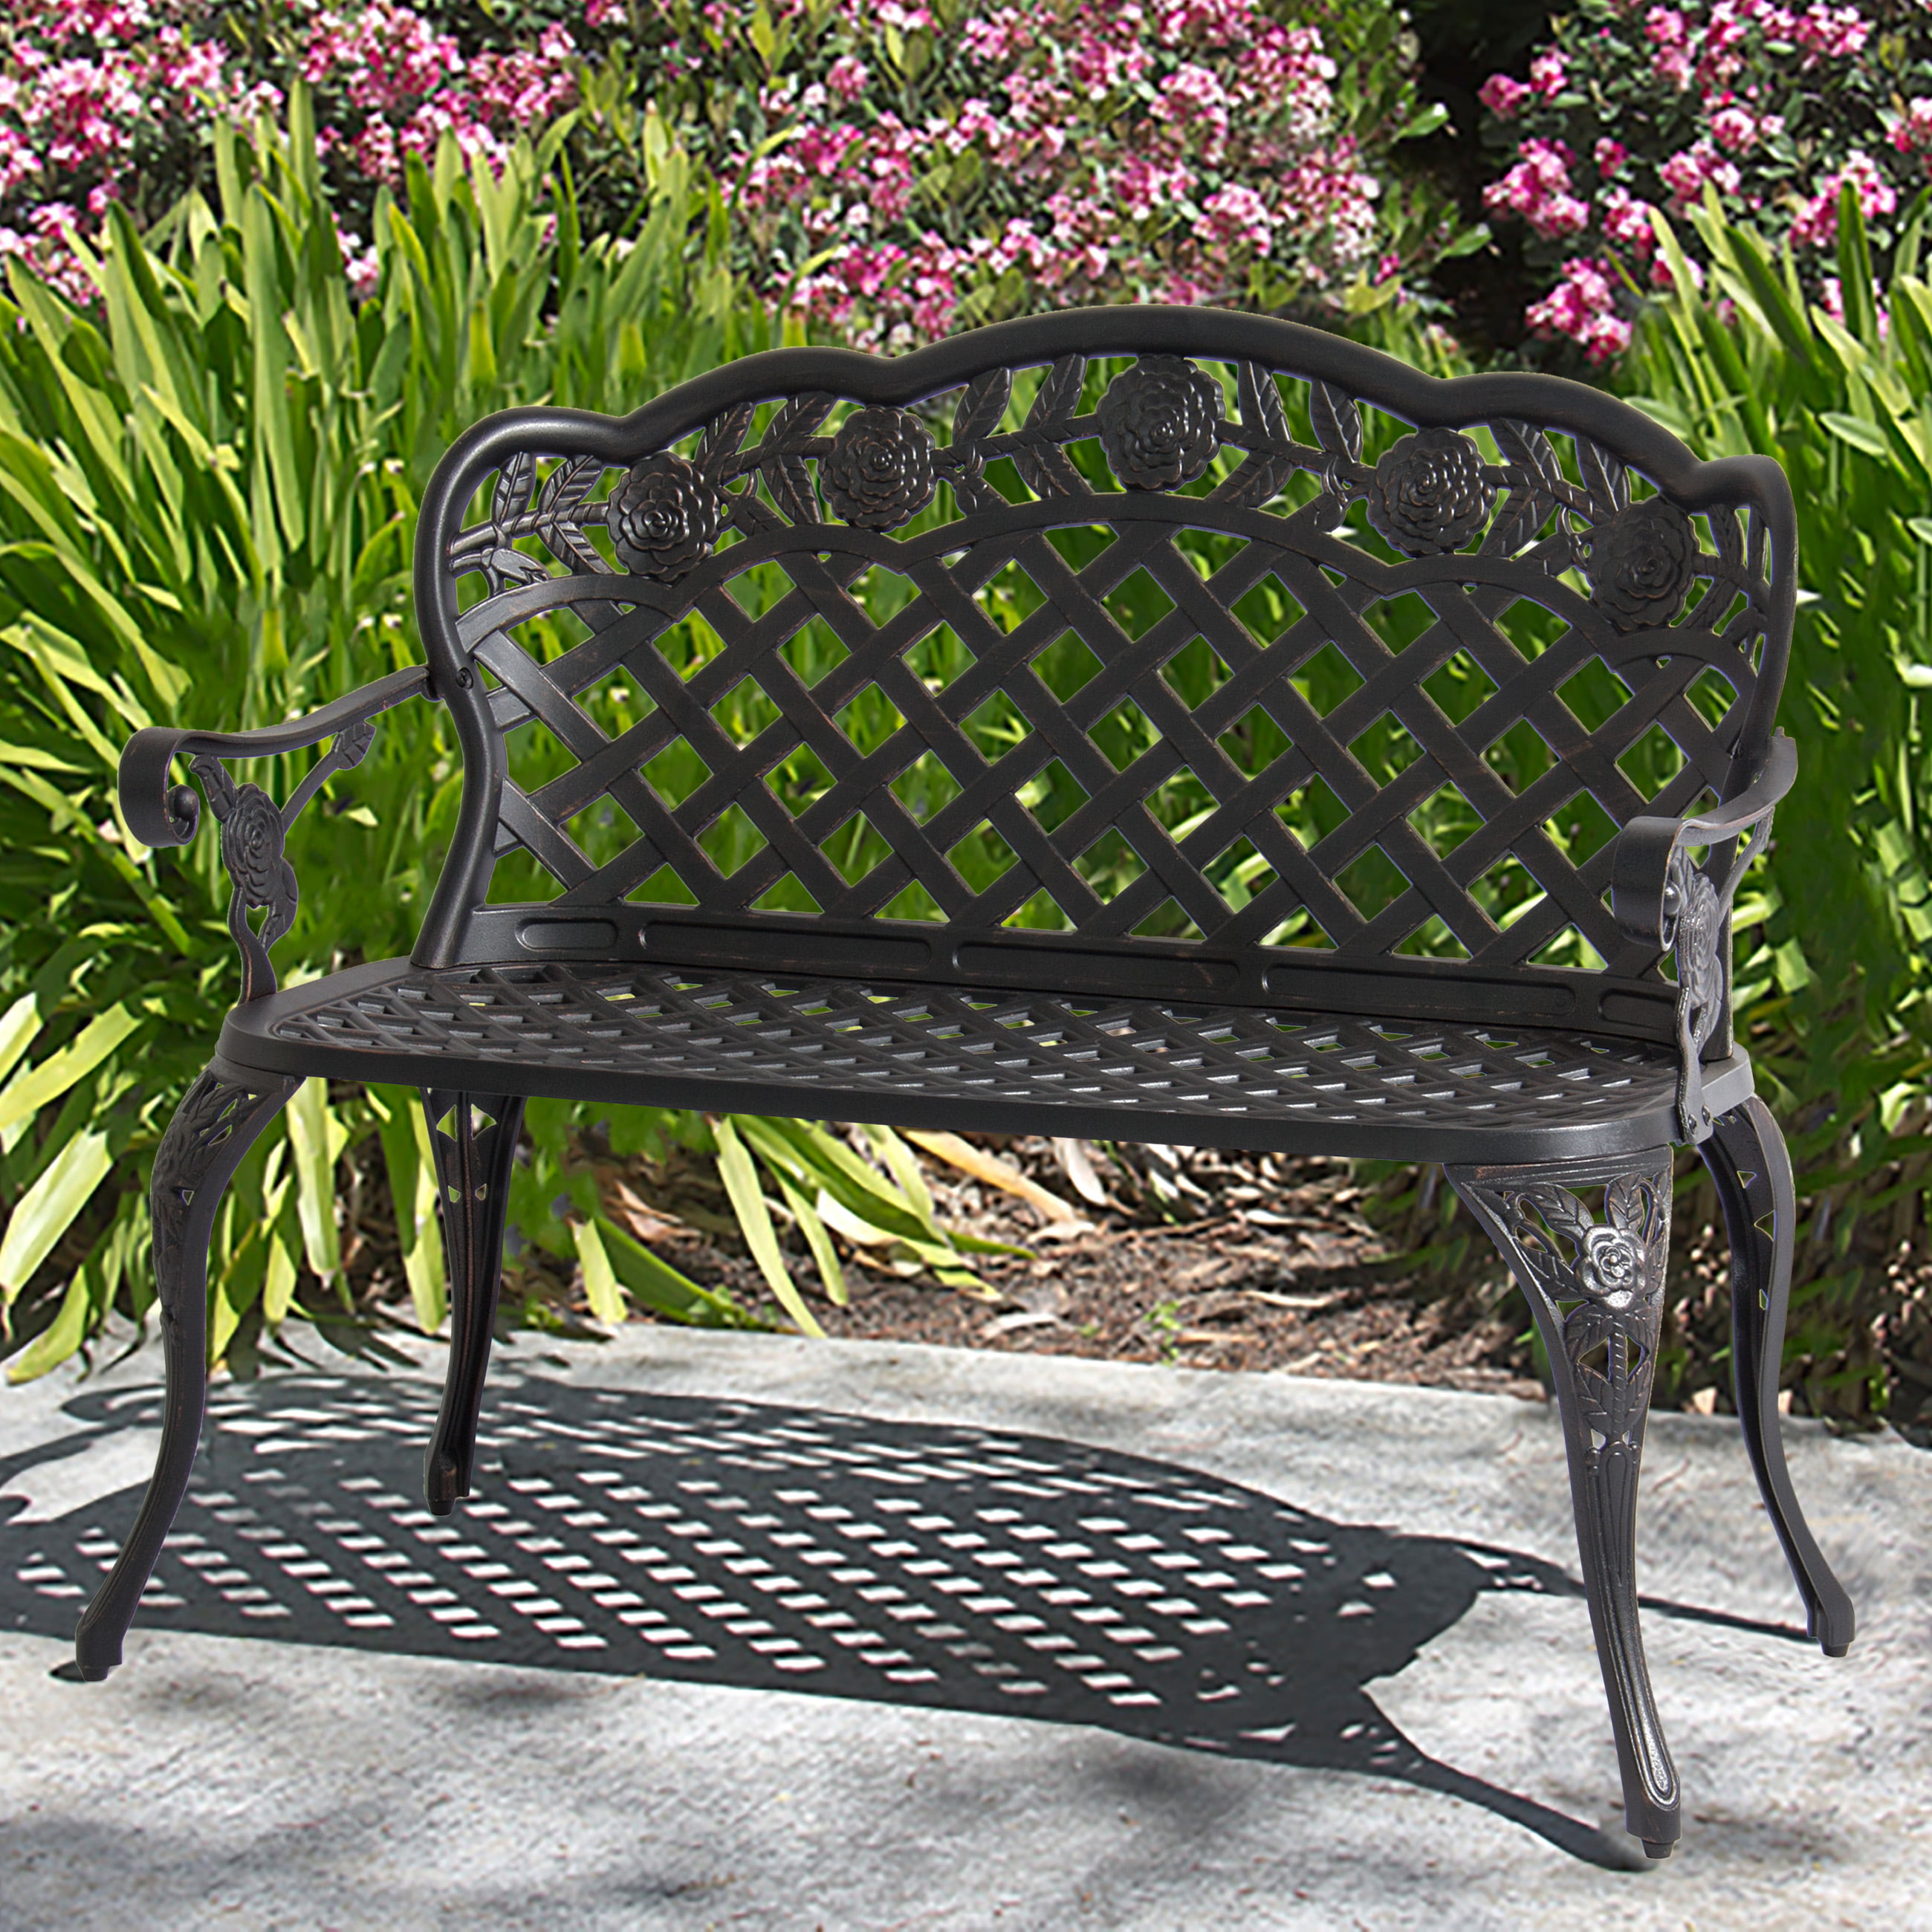 Best Choice Products Patio Garden Bench Cast Aluminum Outdoor Garden Yard Solid... by